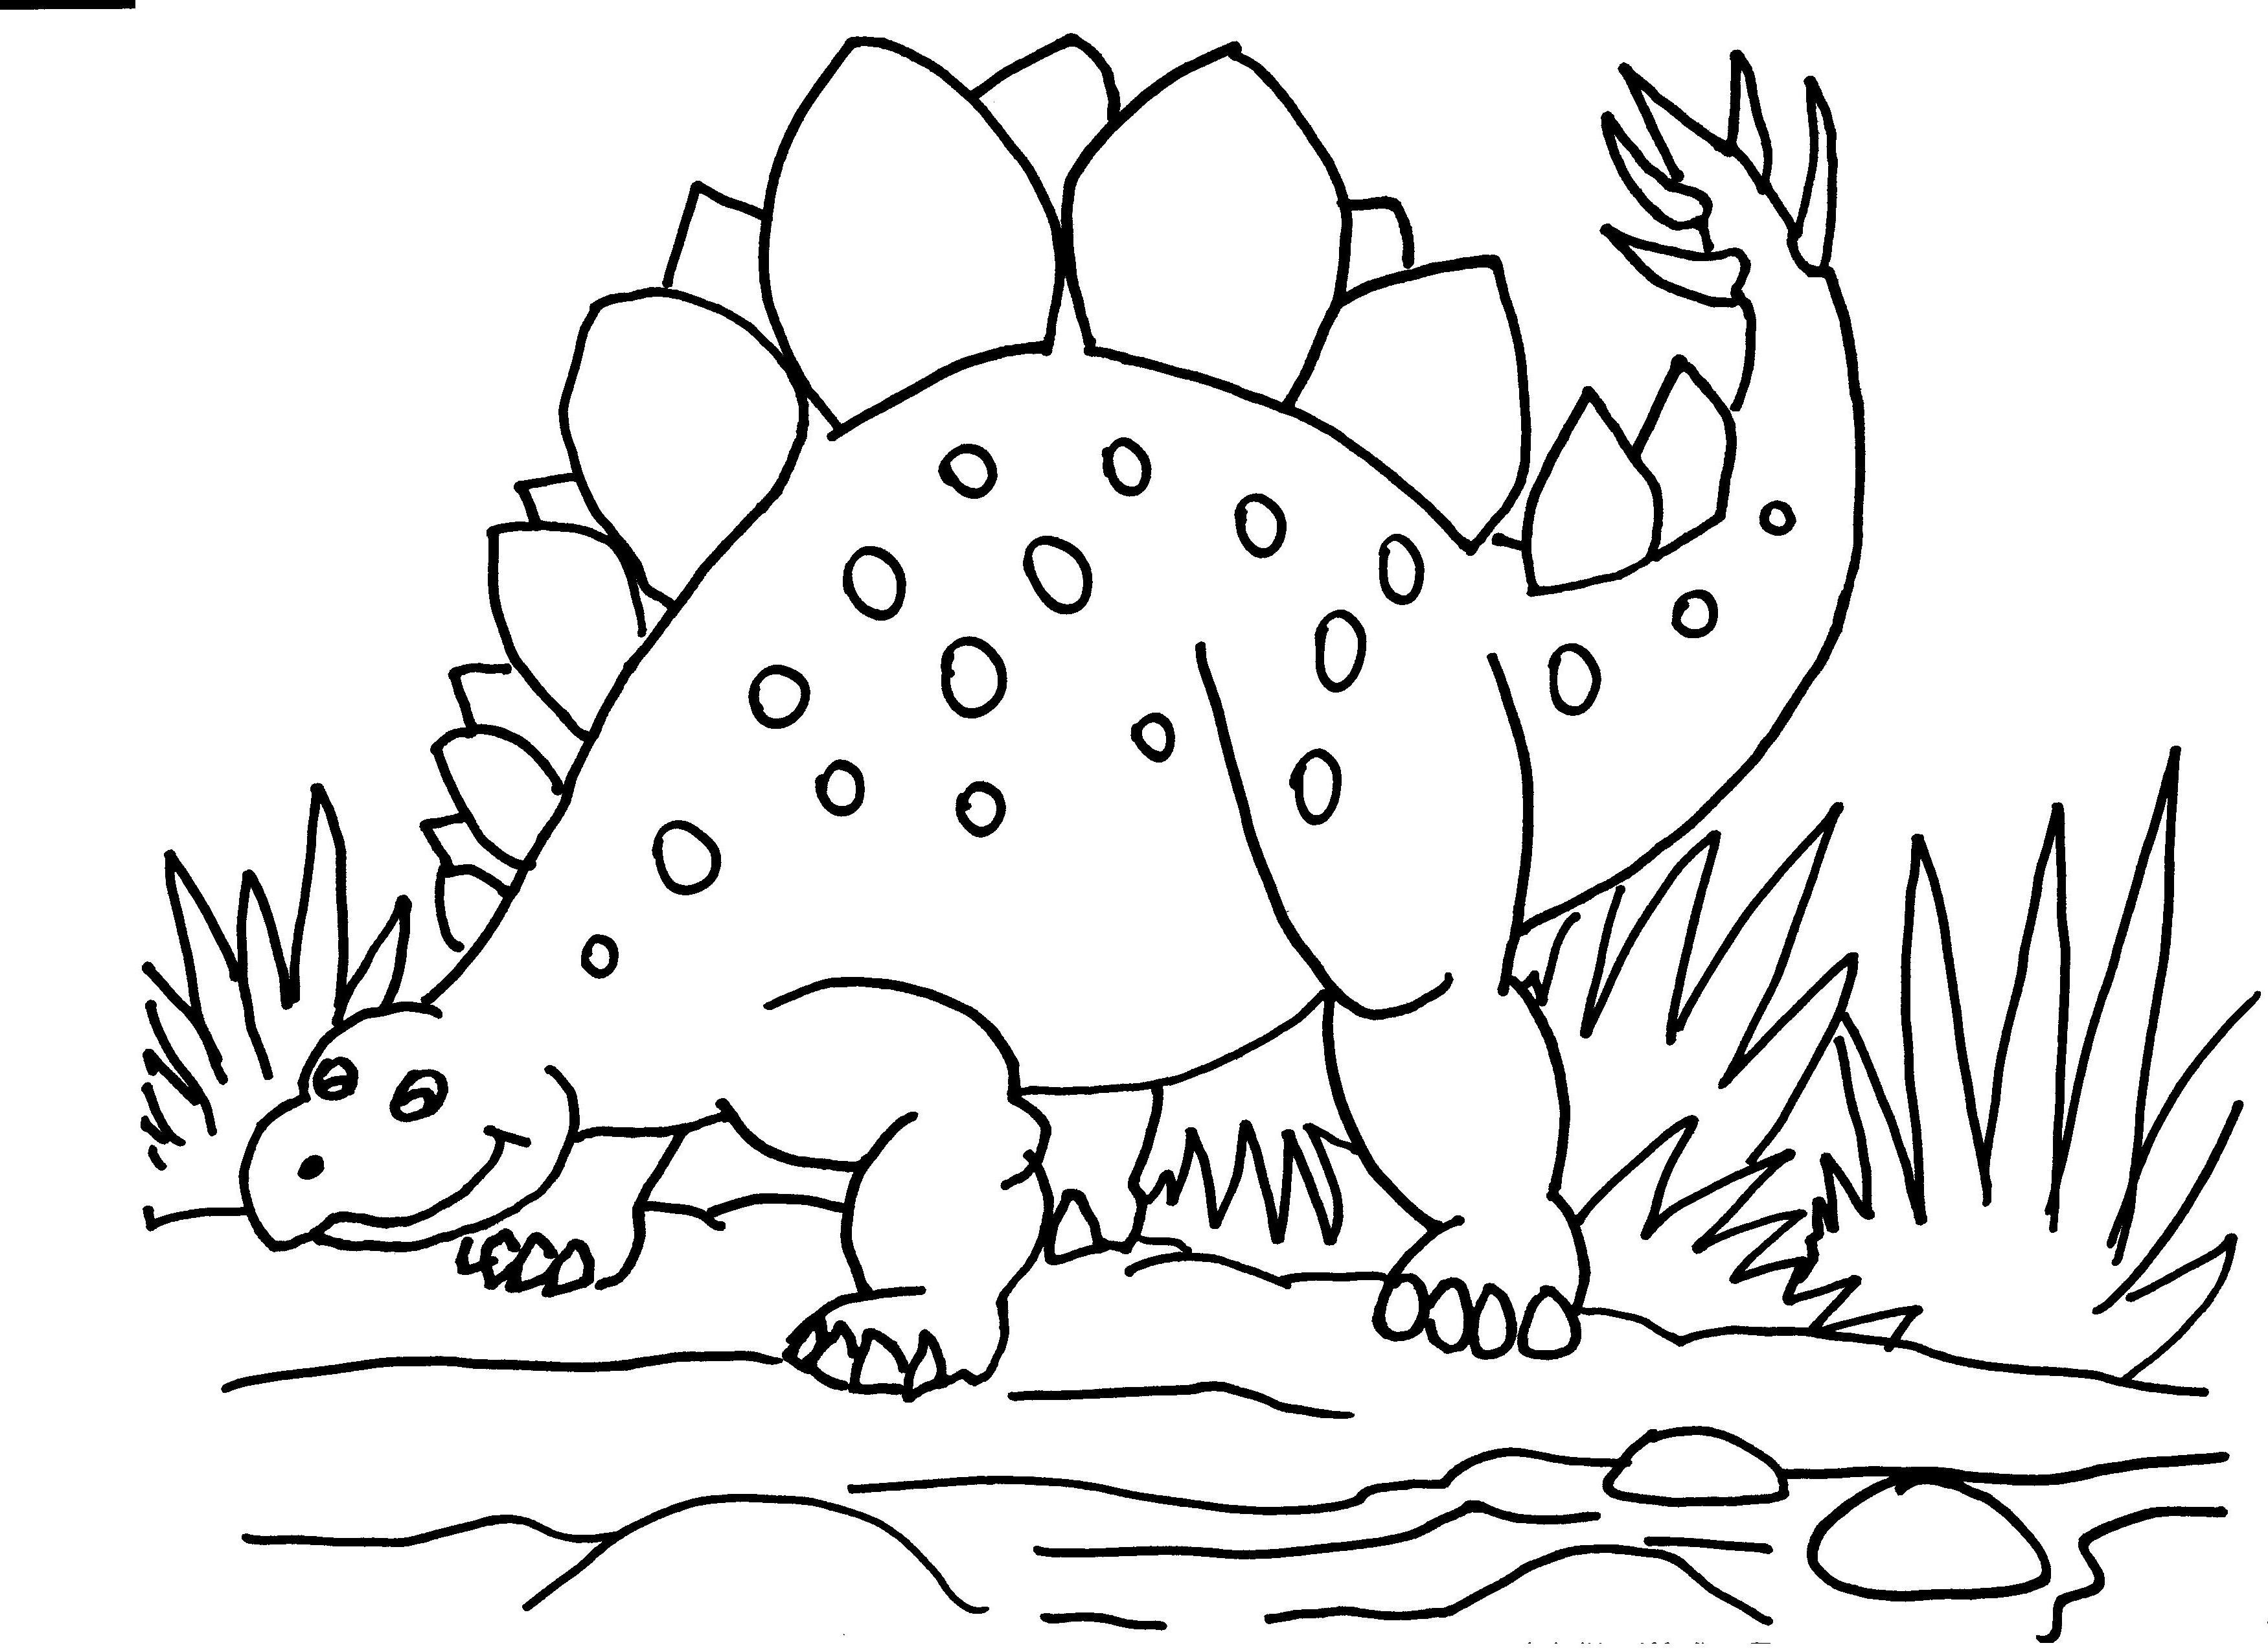 Stegosaurus Colouring PagesColoring